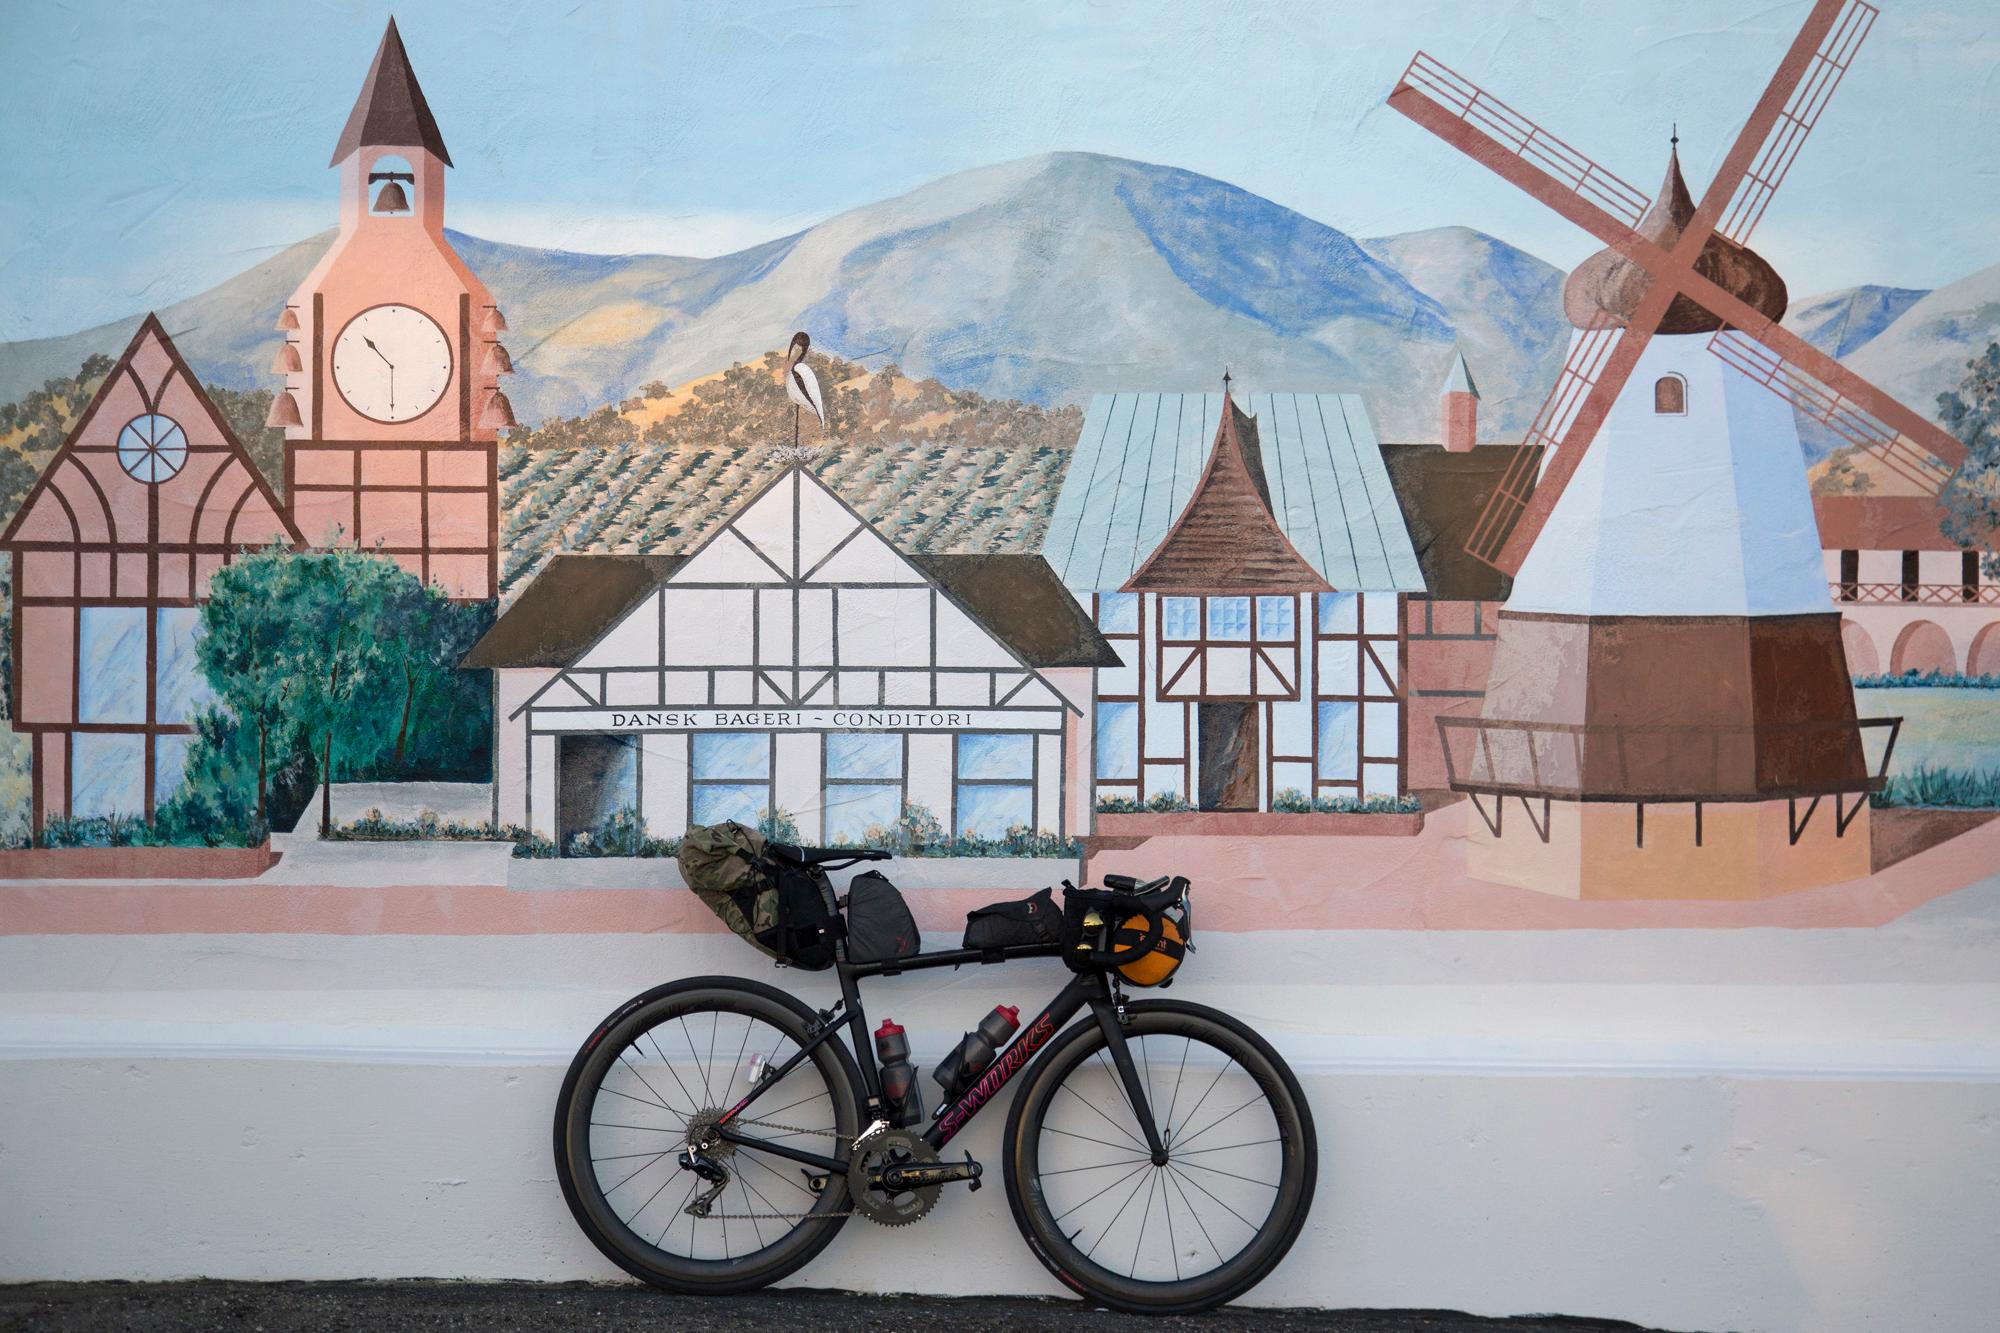 The 2018 Specialized Women's Tarmac in Solvang, Calif. (Rugile Kaladyte)